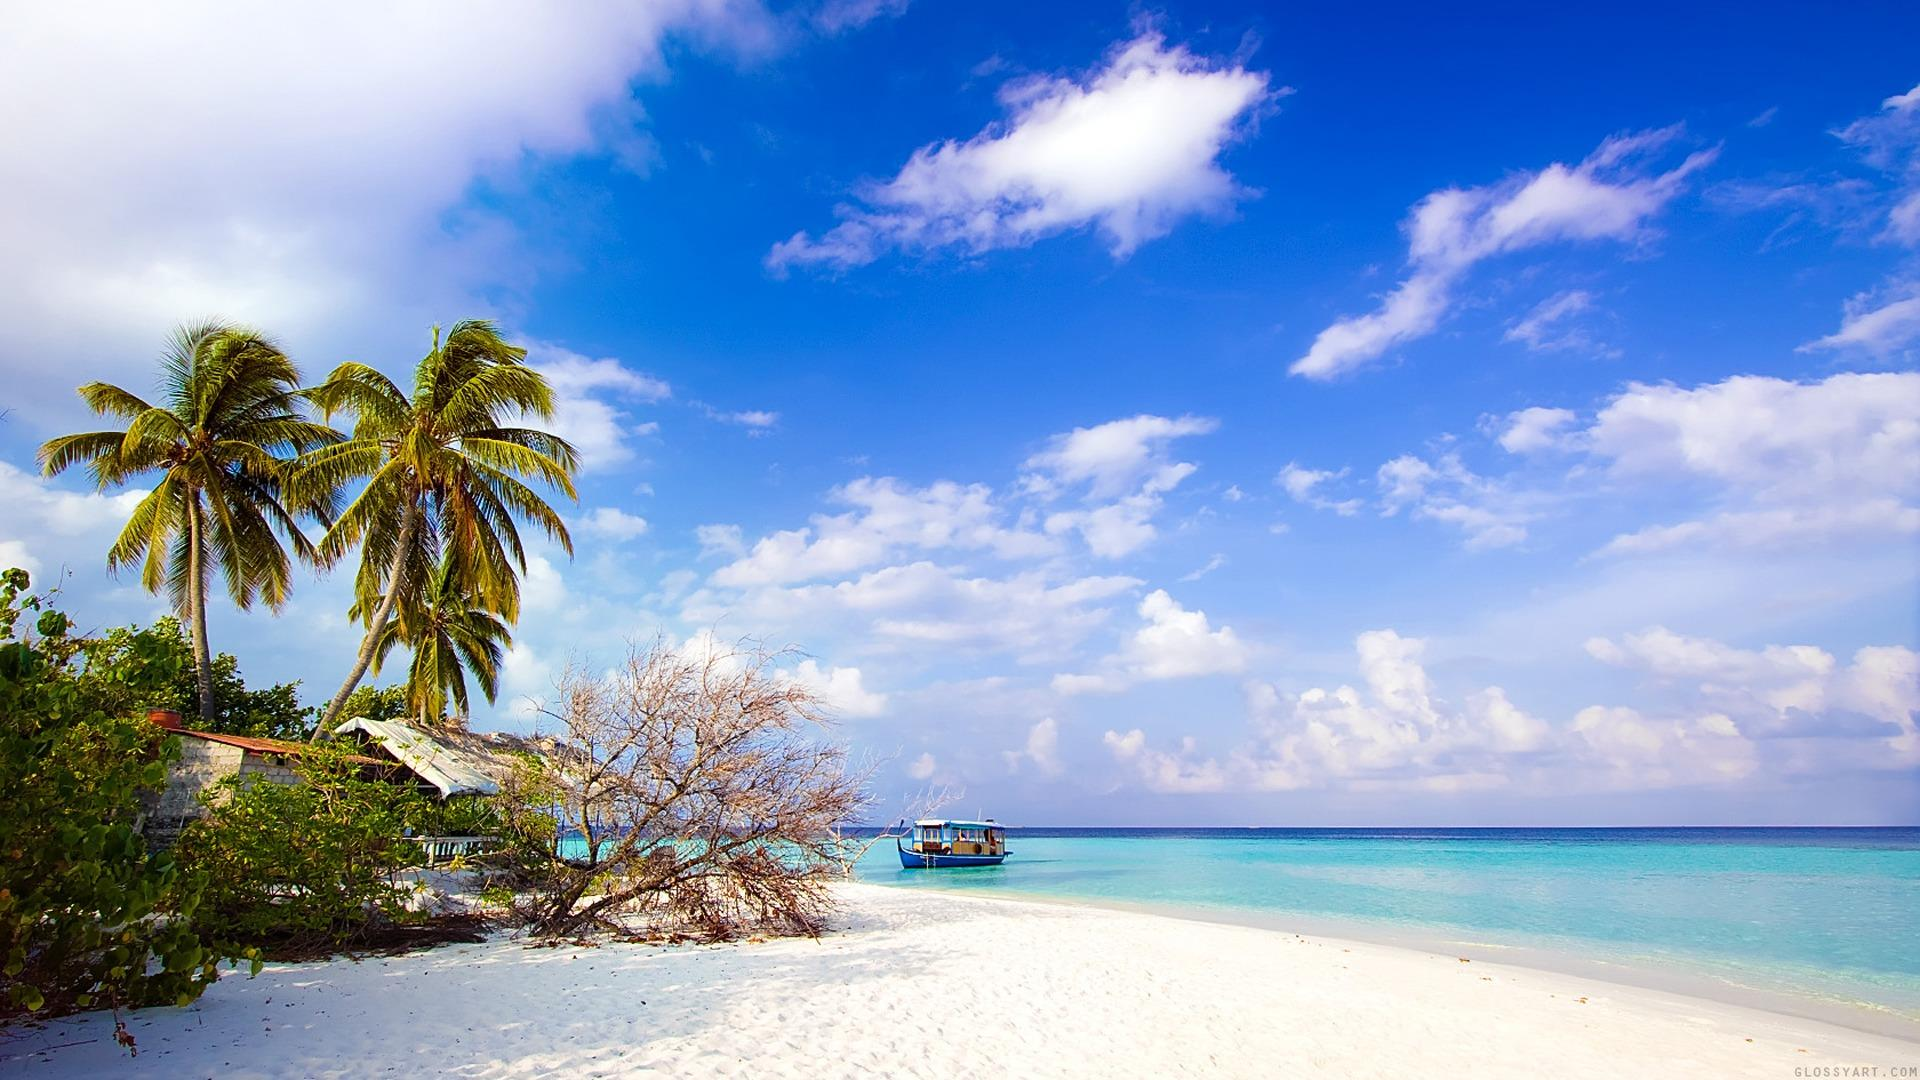 Maldives Wallpapers 1080p